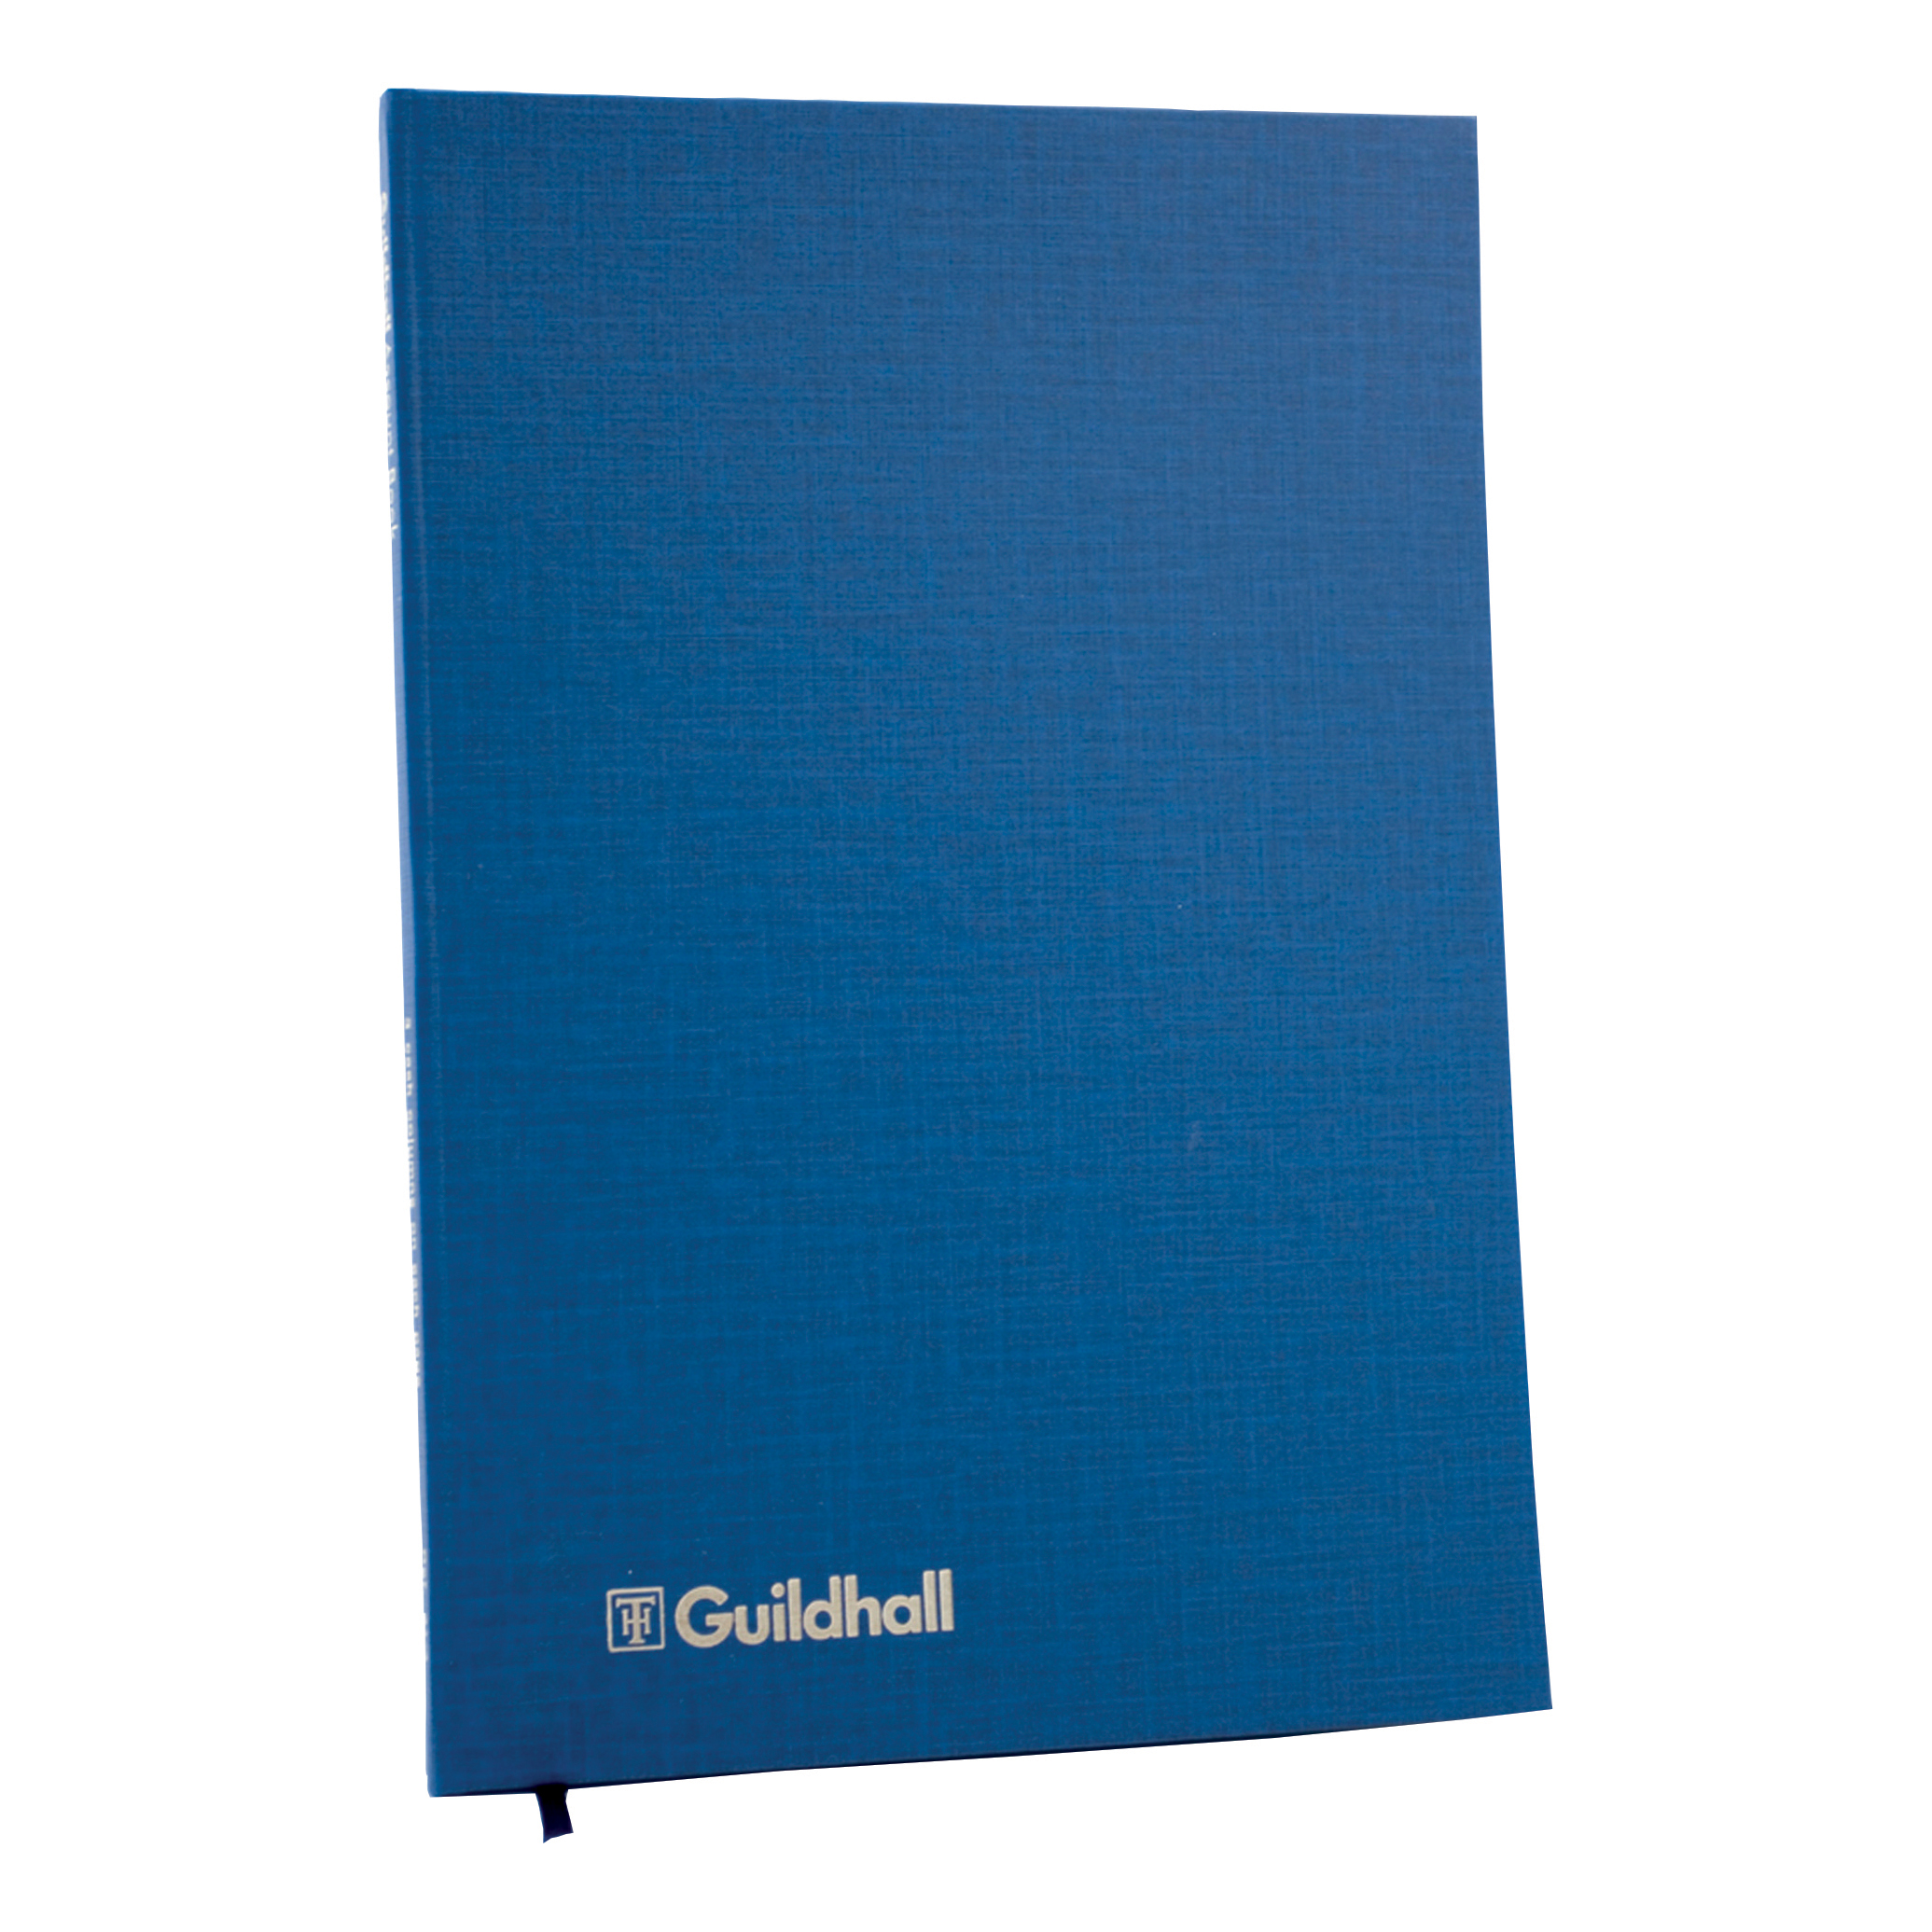 Accounts Binders & Refills Guildhall Account Book 31 Series 3 Cash Column 80 Pages 298x203mm Ref 31/3Z